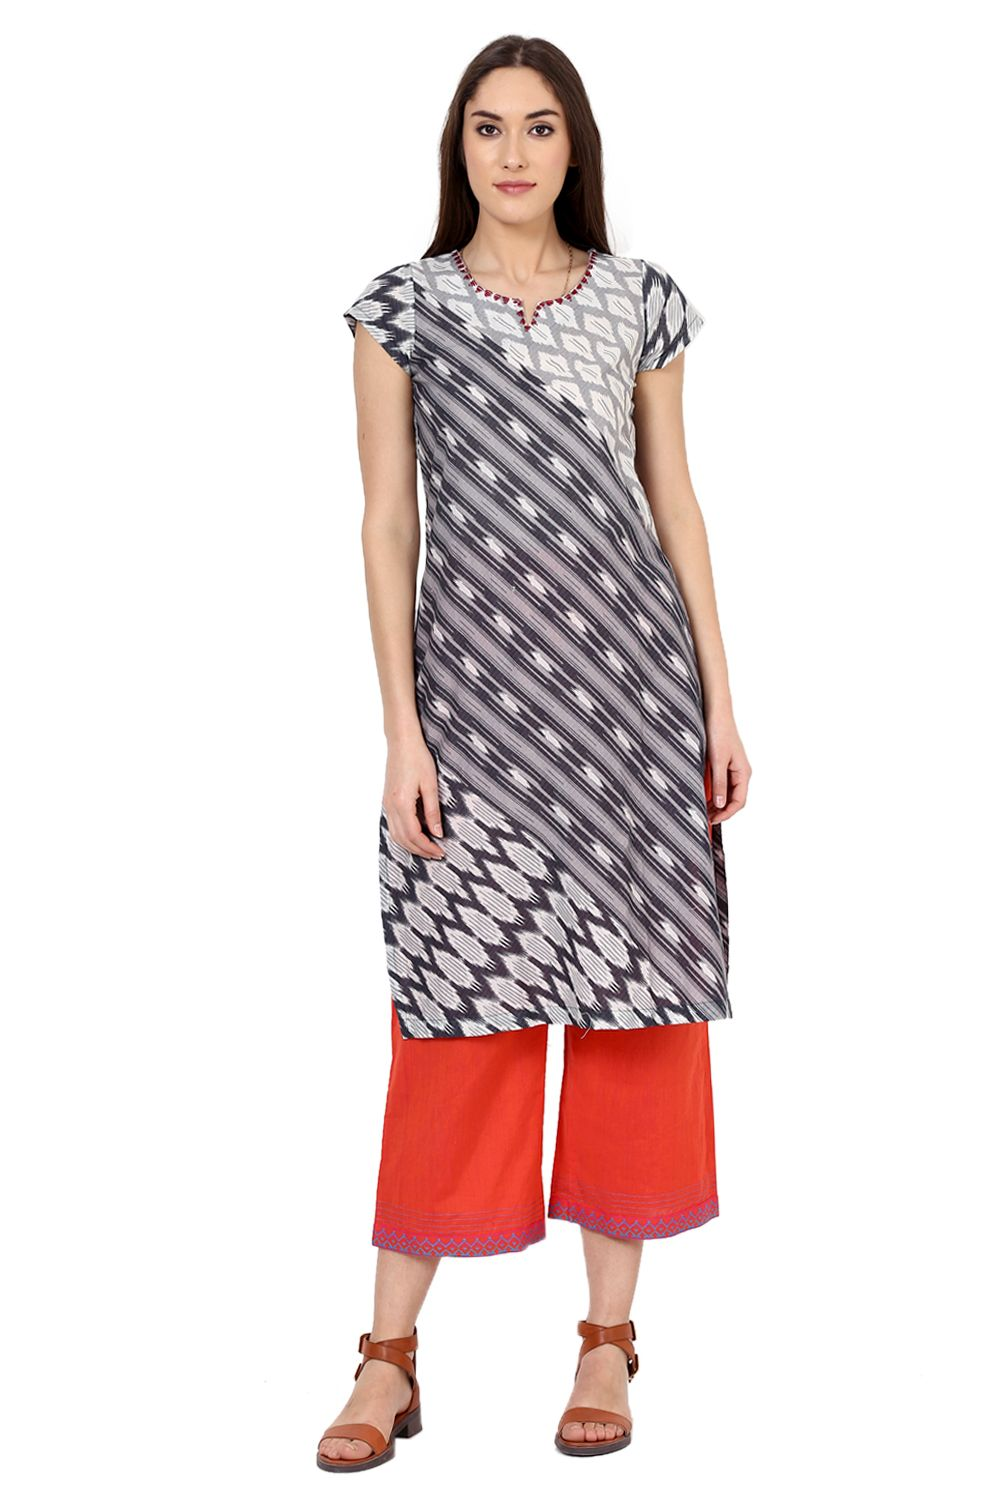 db54b035420 Buy Online Grey Straight Cotton Kurta for Women at Best Price at  Rangriti.com - RMMINDIANK1279GRY